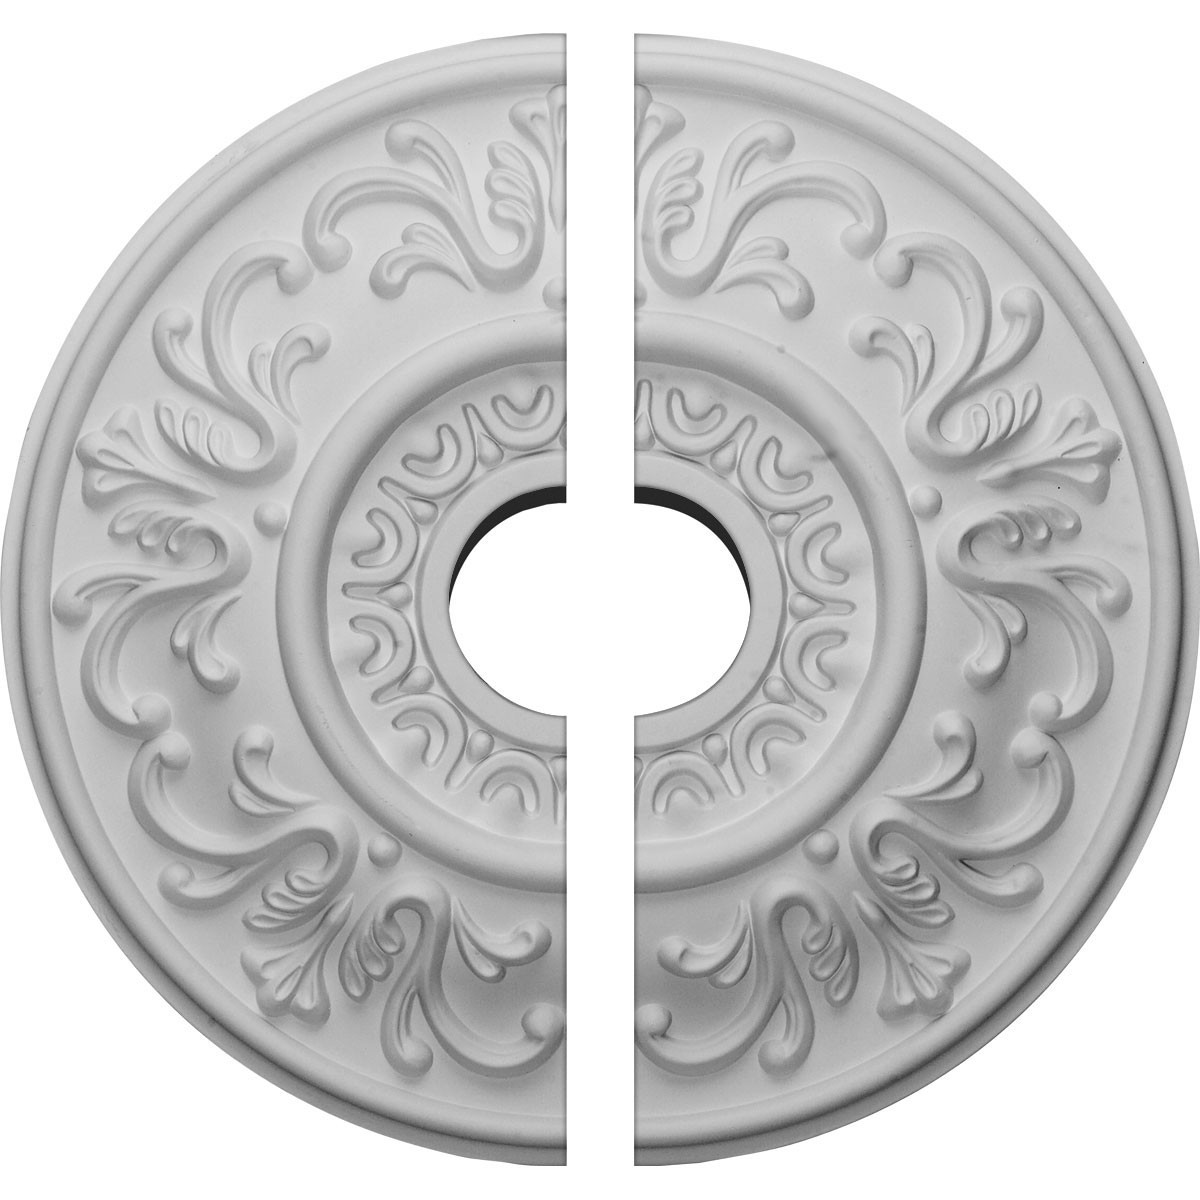 "EM-CM18VL2 - 18""OD x 3 1/2""ID x 1""P Valletta Ceiling Medallion, Two Piece (Fits Canopies up to 3 1/2"")"